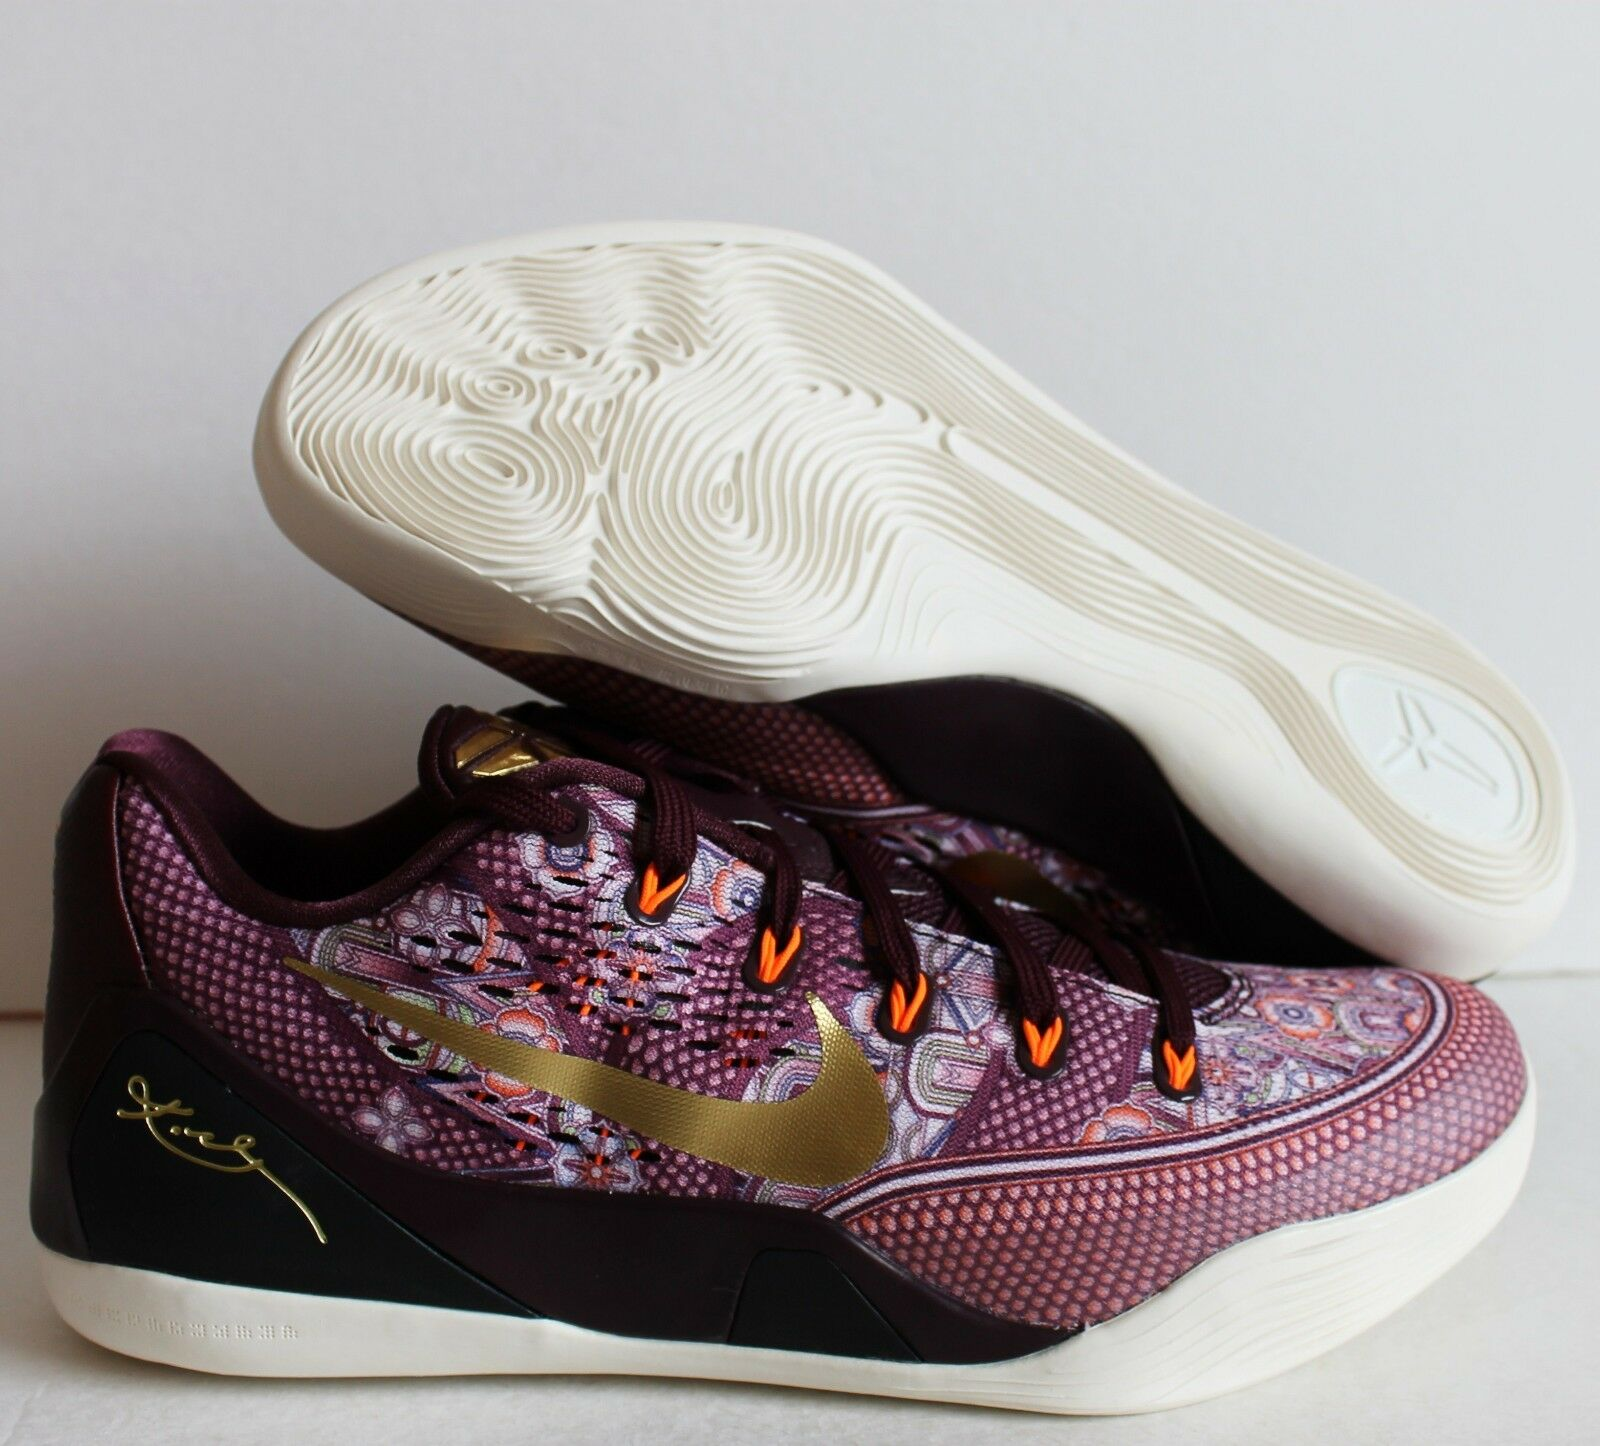 NIKE KOBE IX MERLOT-METALLIC GOLD-TOTAL ORANGE SZ 12 [646701-676]